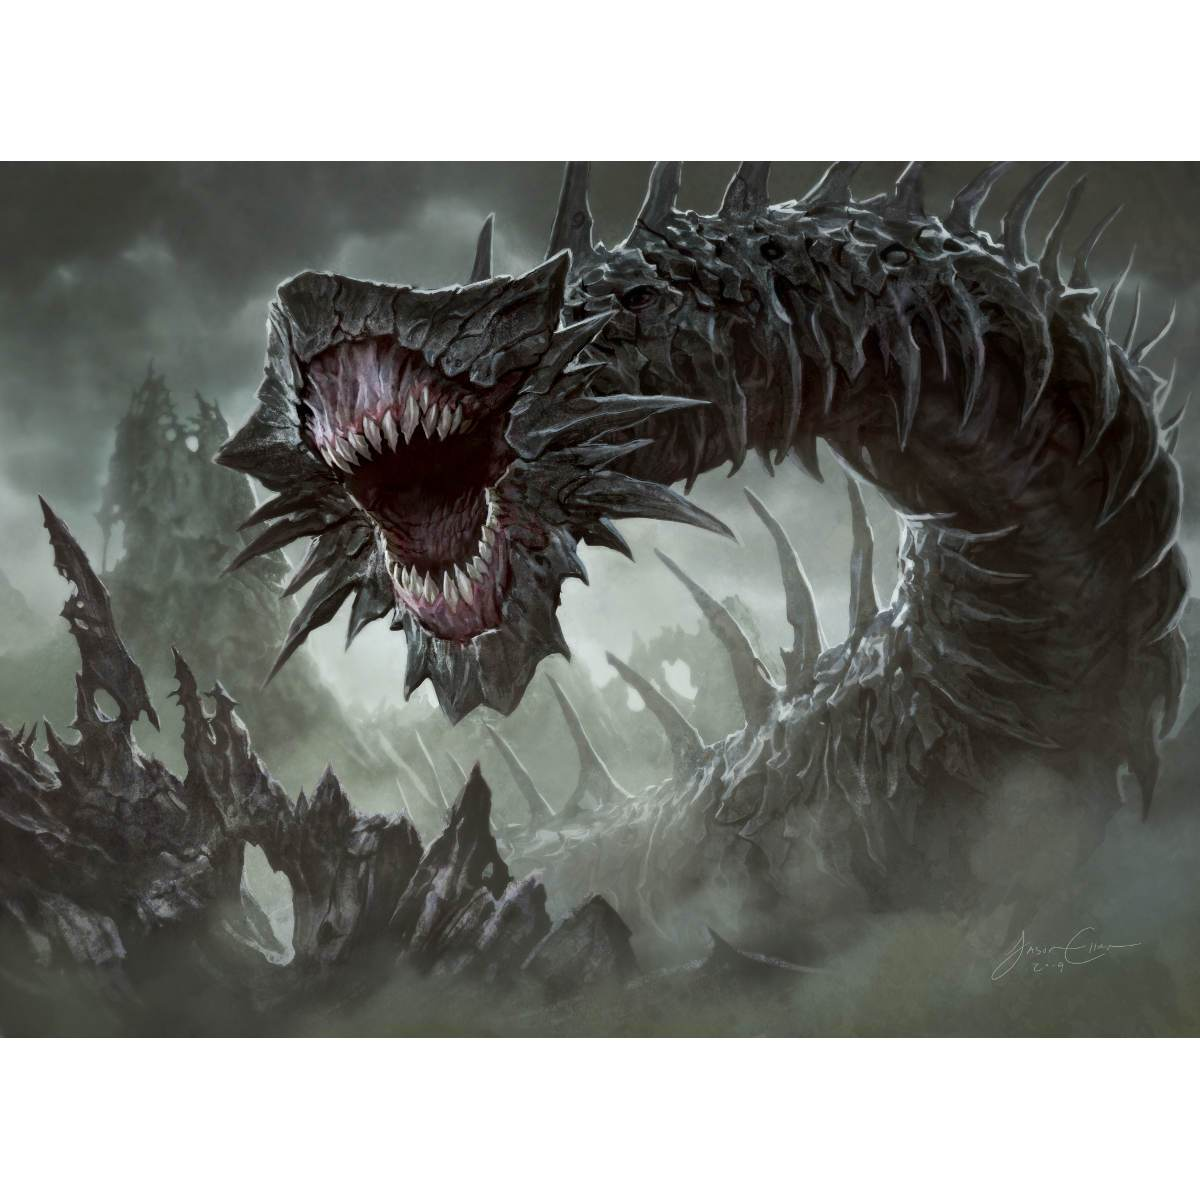 Massacre Wurm Print - Print - Original Magic Art - Accessories for Magic the Gathering and other card games